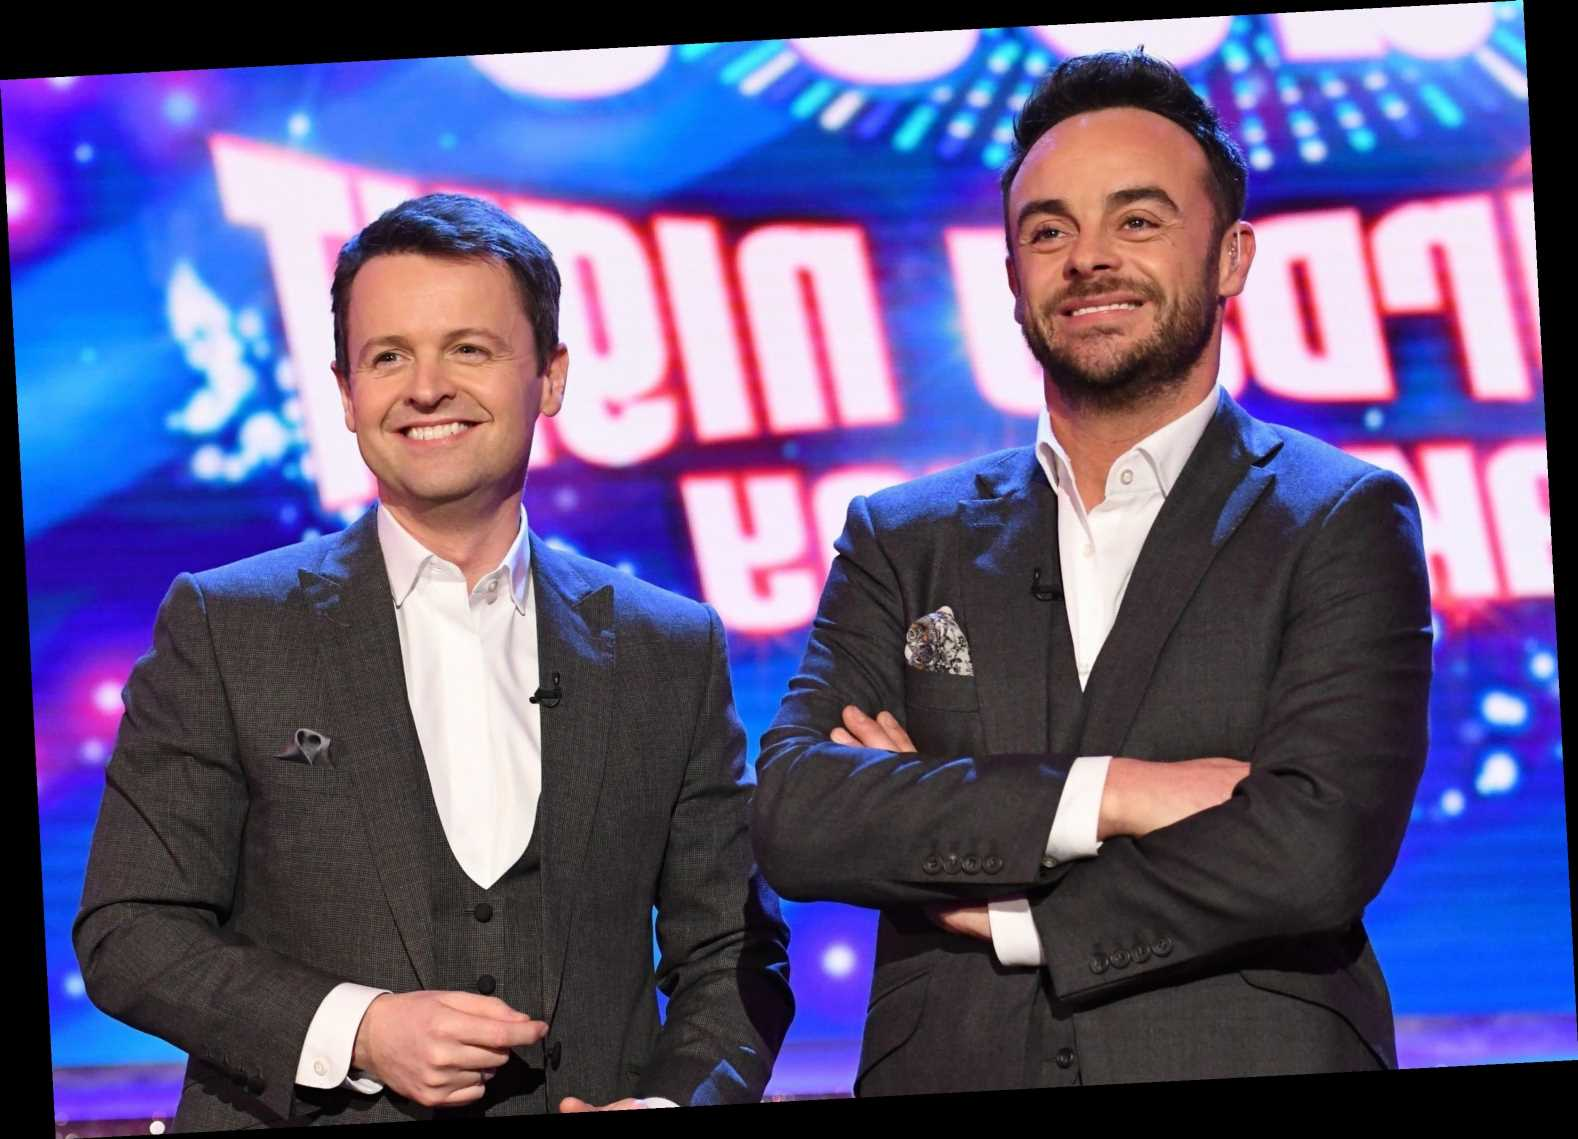 When is Ant & Dec's Saturday Night Takeaway on ITV tonight? – The Sun